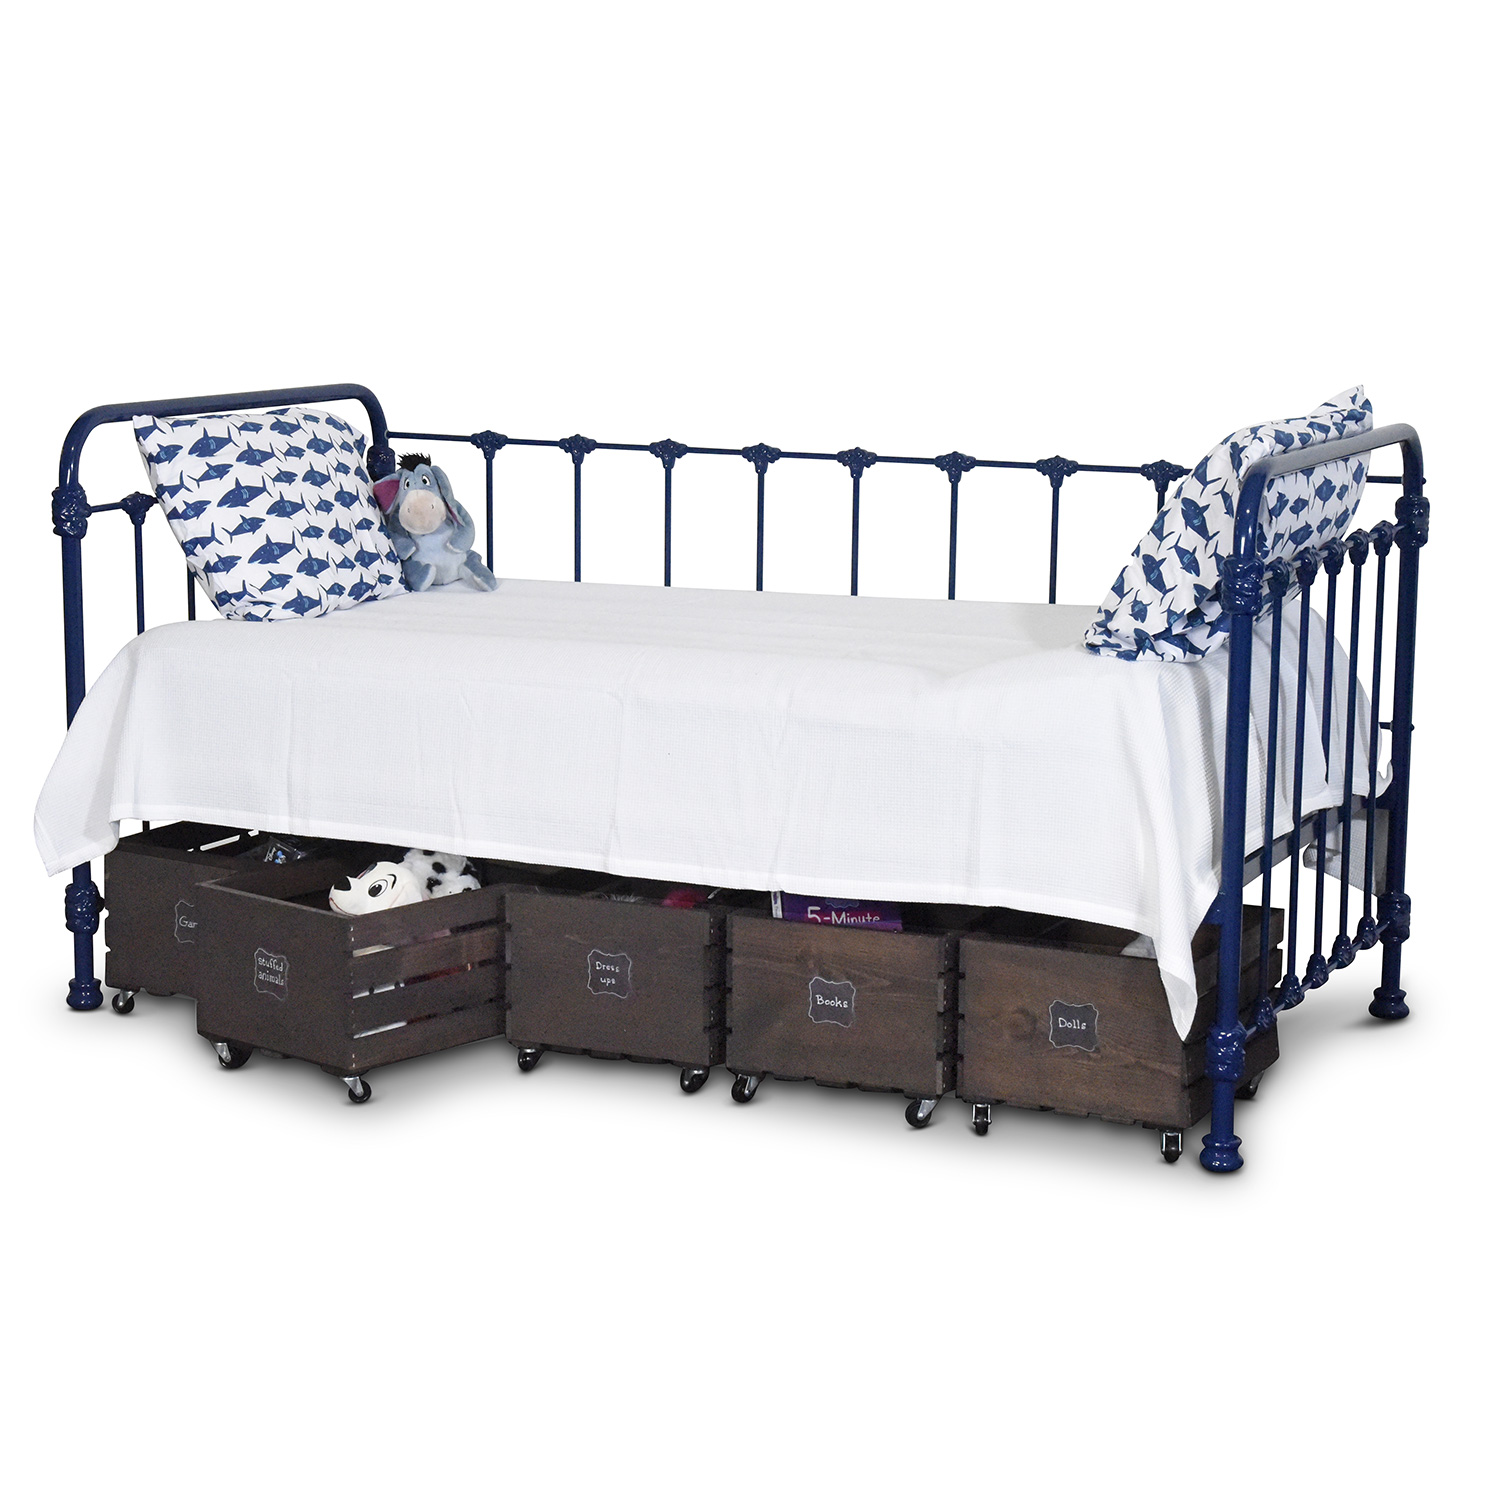 160-D Daybed With Storage Shadow